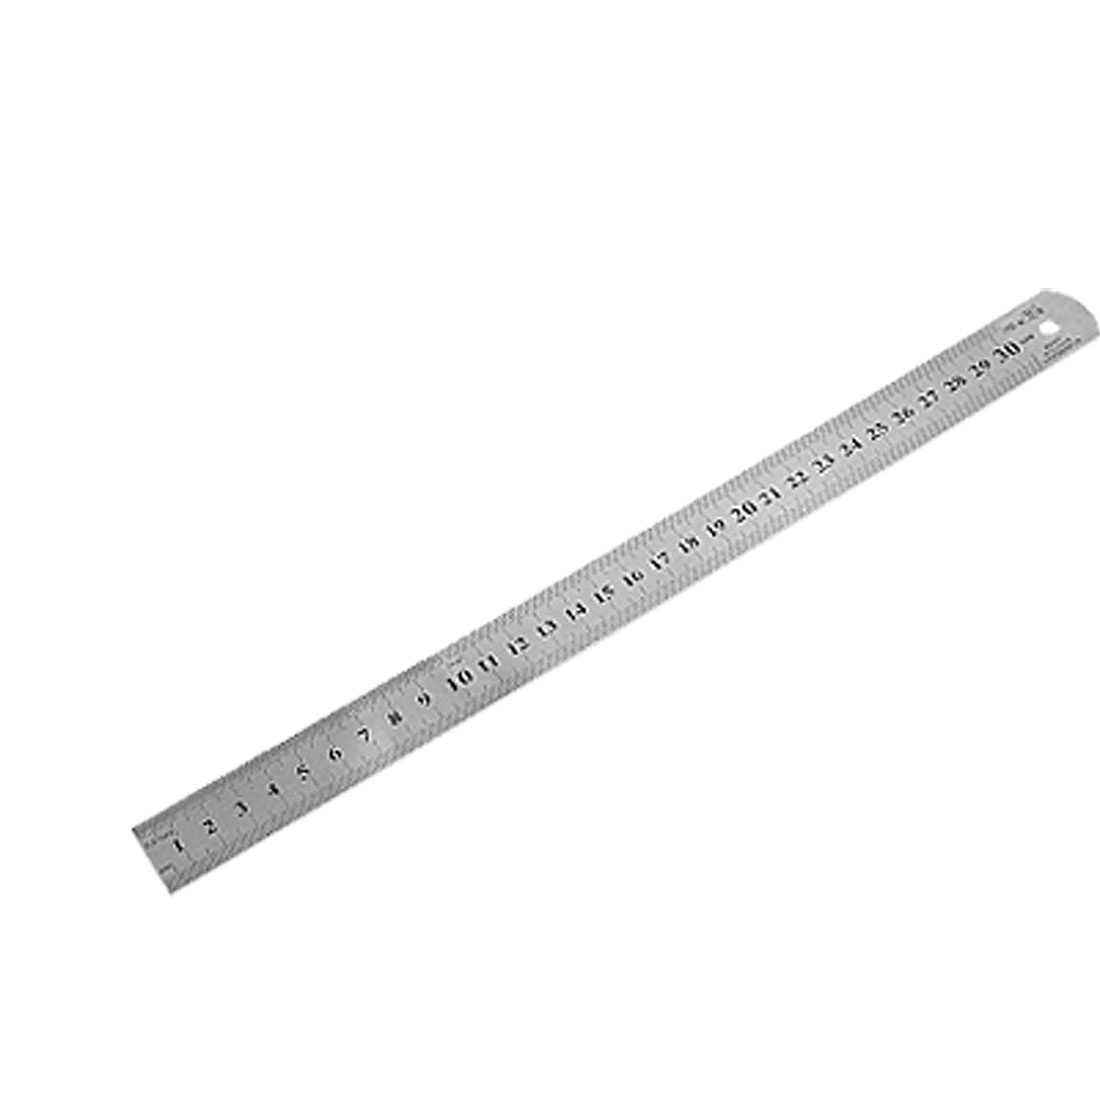 Stainless Steel Ruler Measure Metric Function 30cm 12Inch